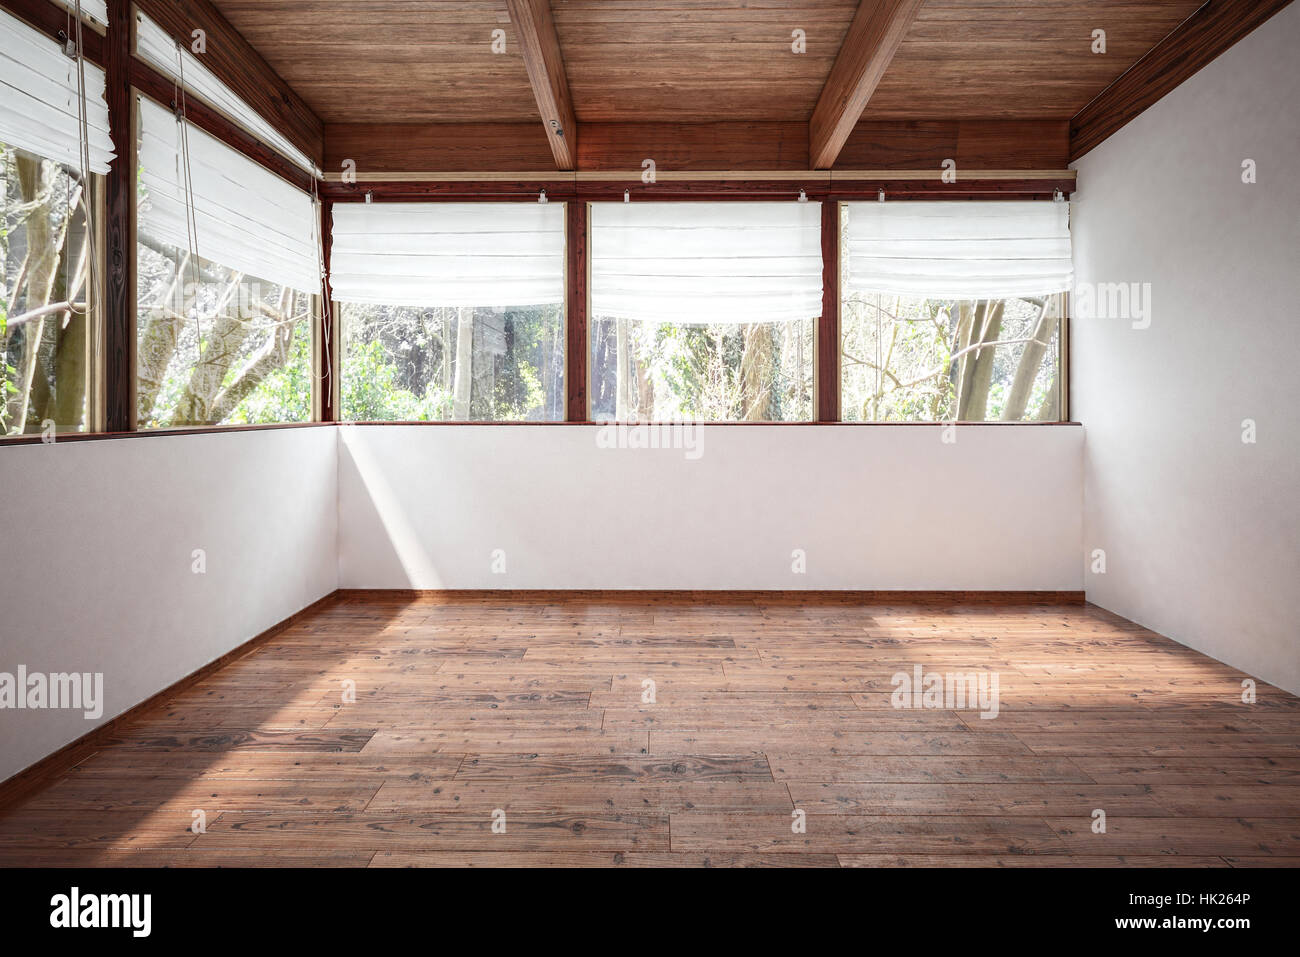 Empty Room With White Walls Wooden Floor And Ceiling With